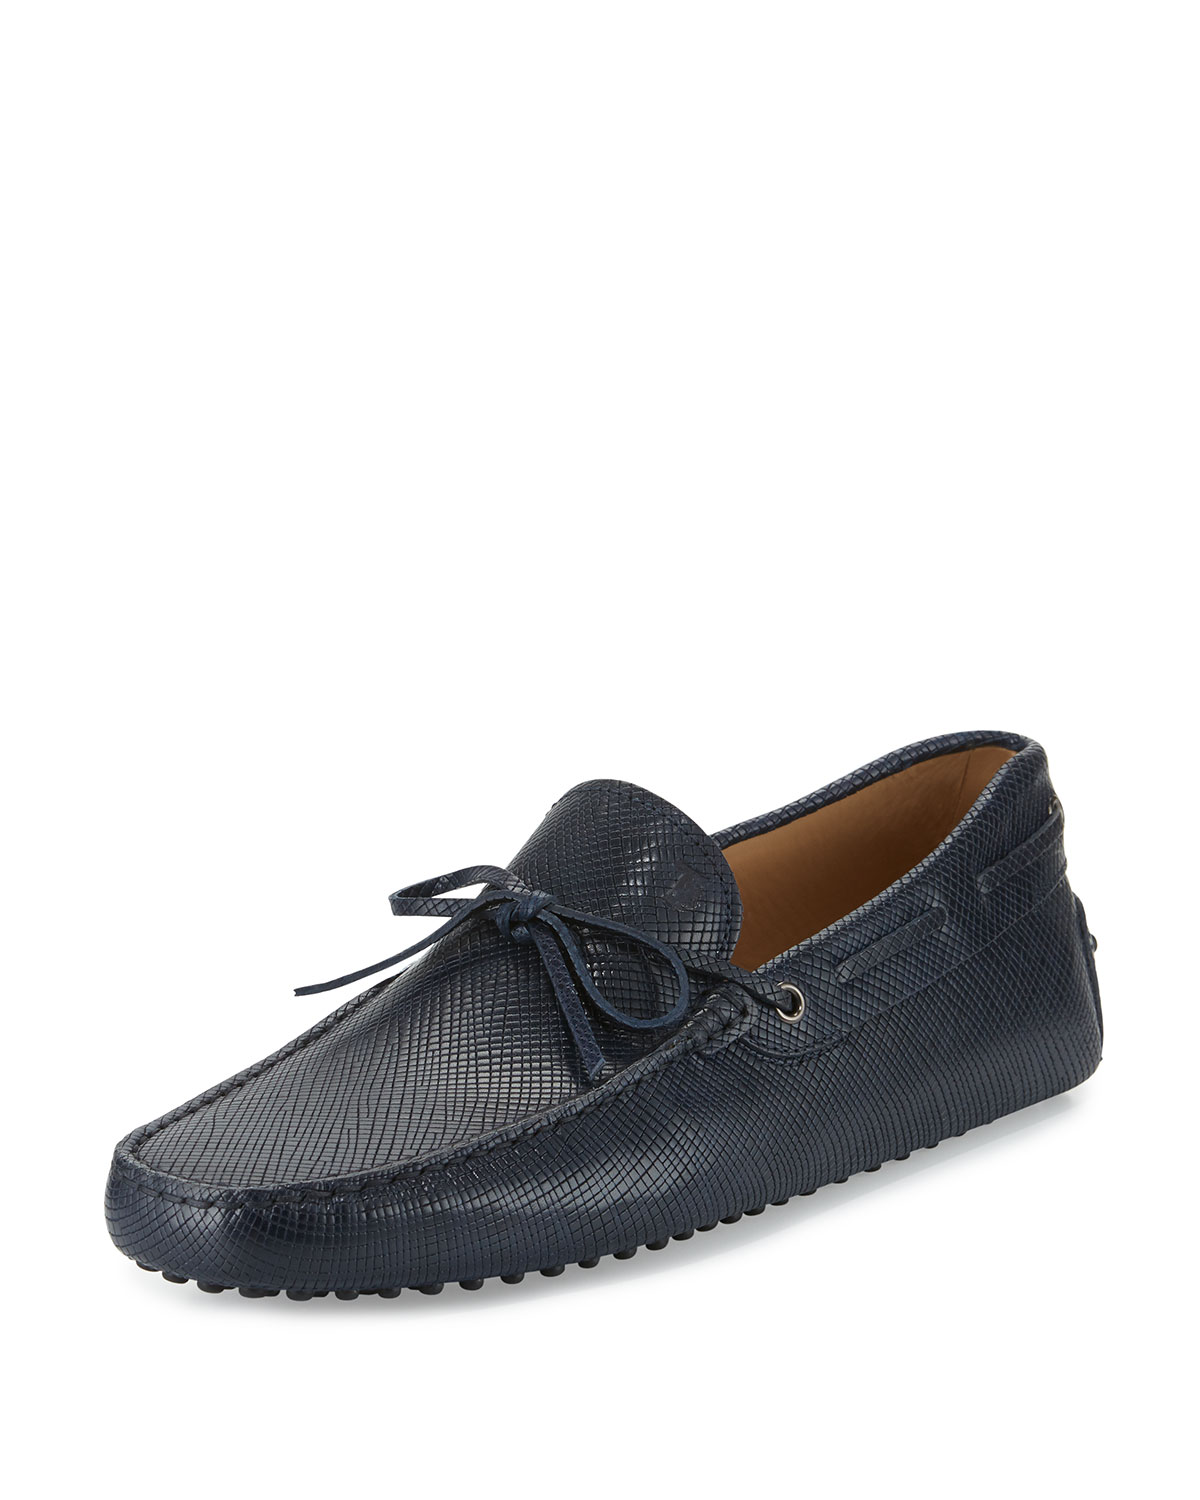 Todu2019s Gommini Textured Leather Tie Navy Driver Shoes ...